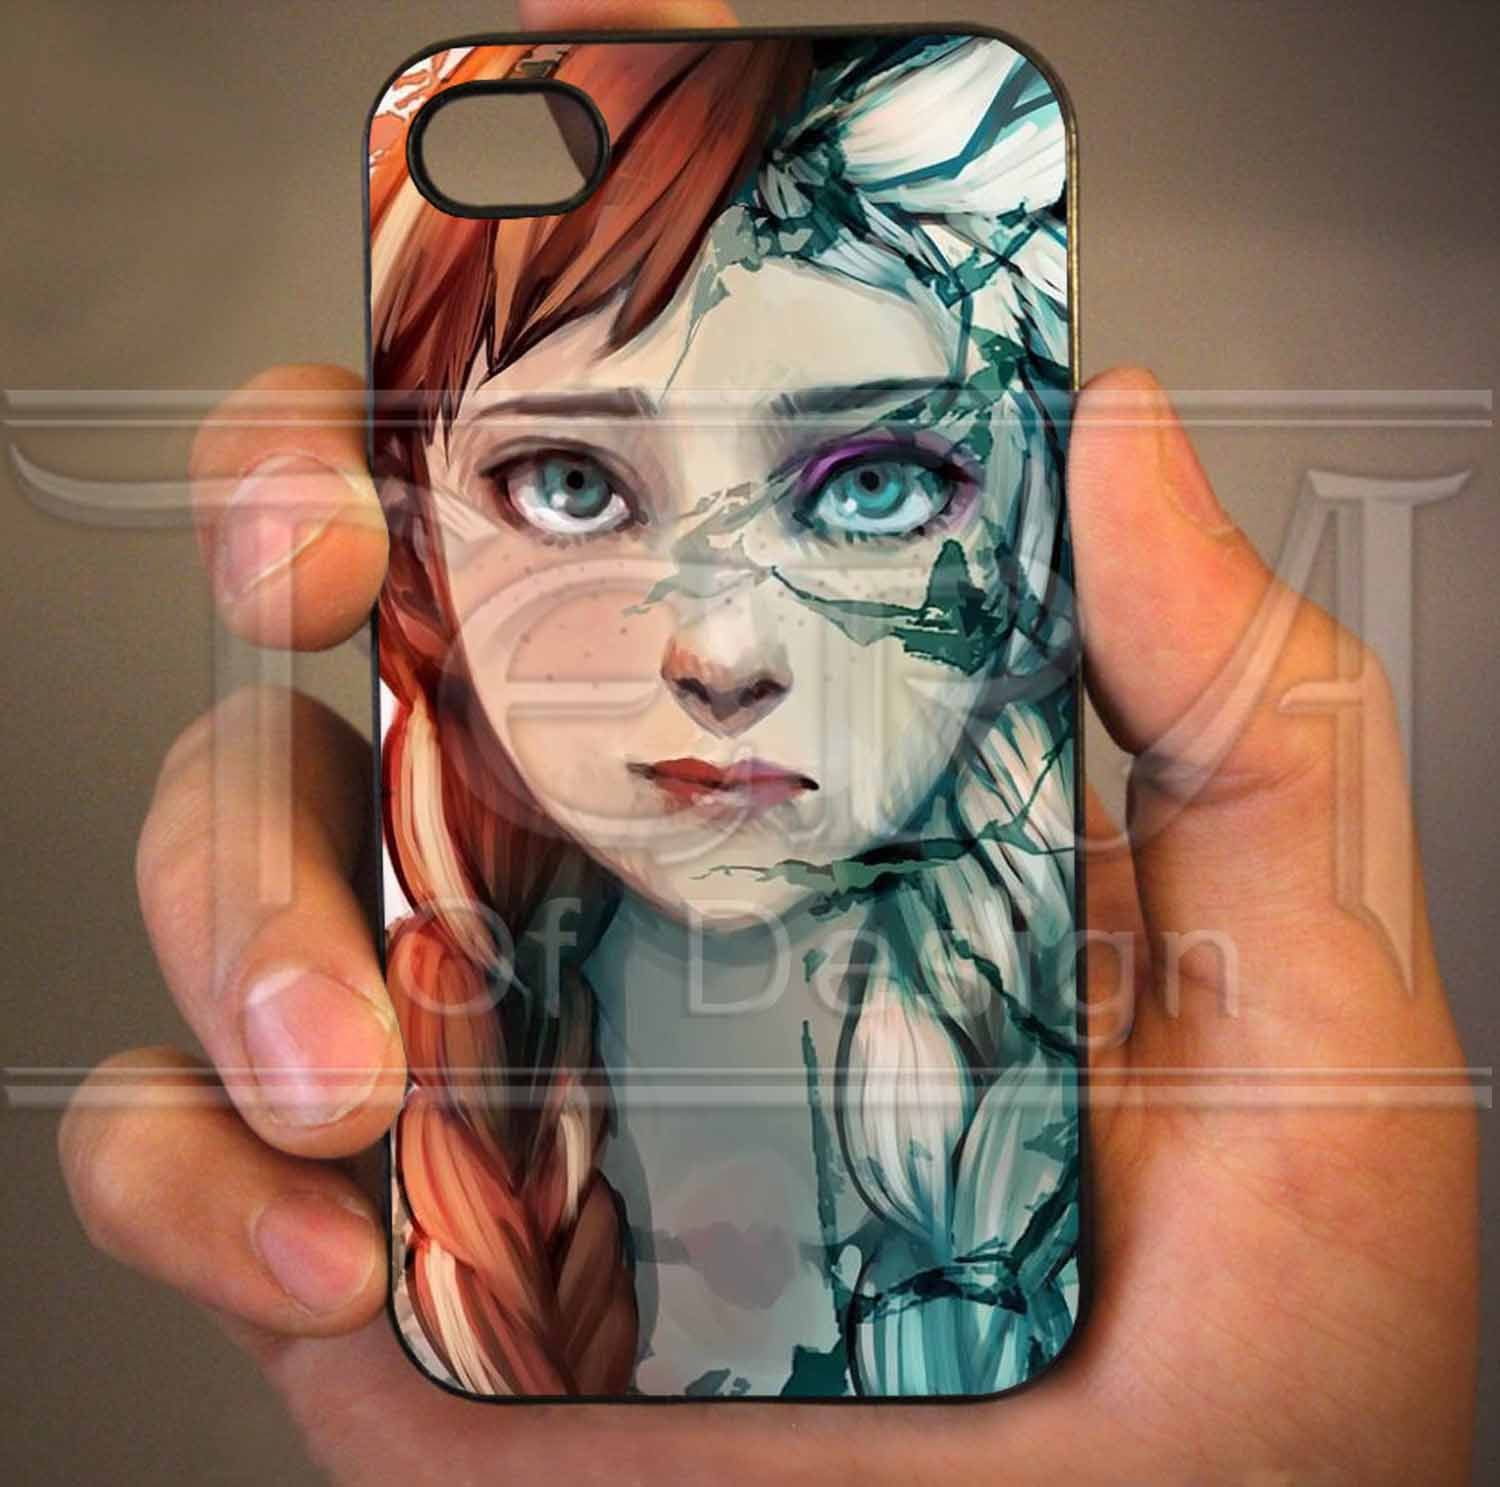 Anna and Elsa Face Disney Frozen design for iPhone by TeraOfDesign, $14.99